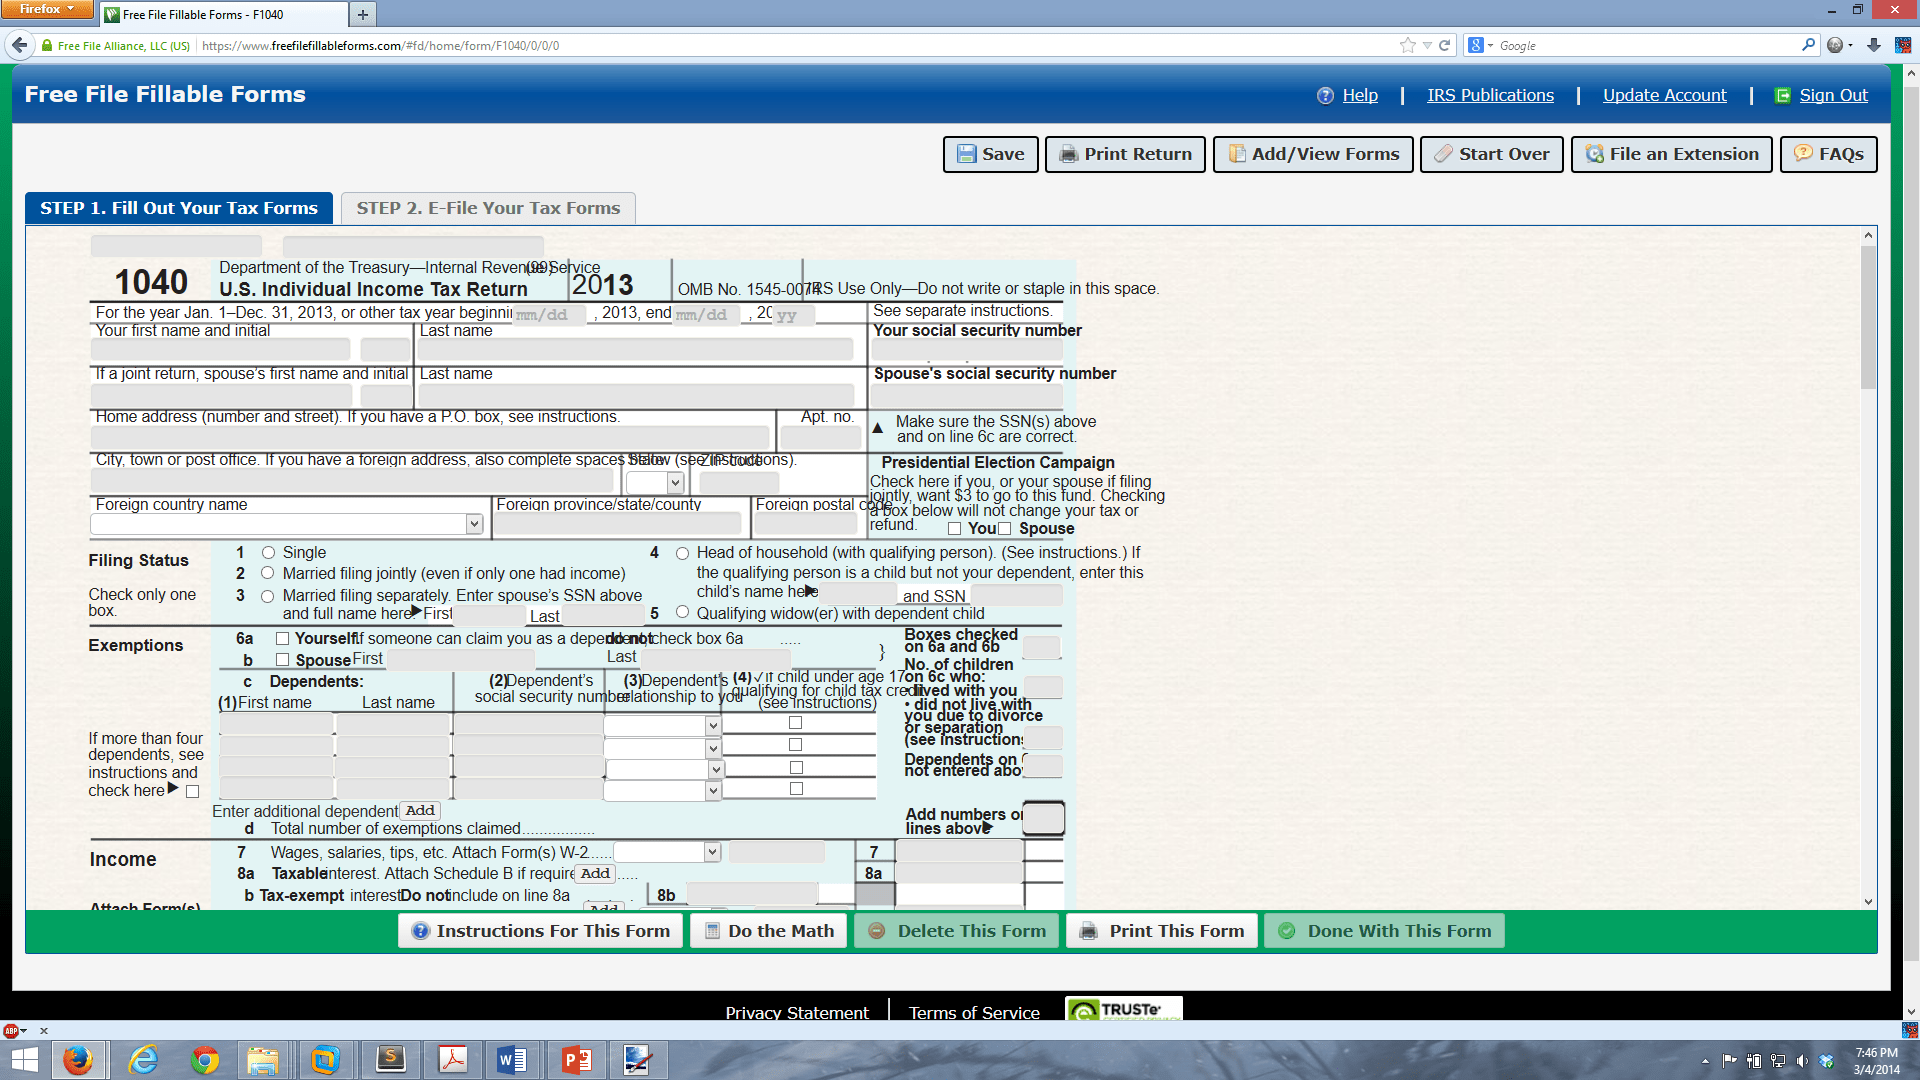 Irs Free File Fillable Forms 2013